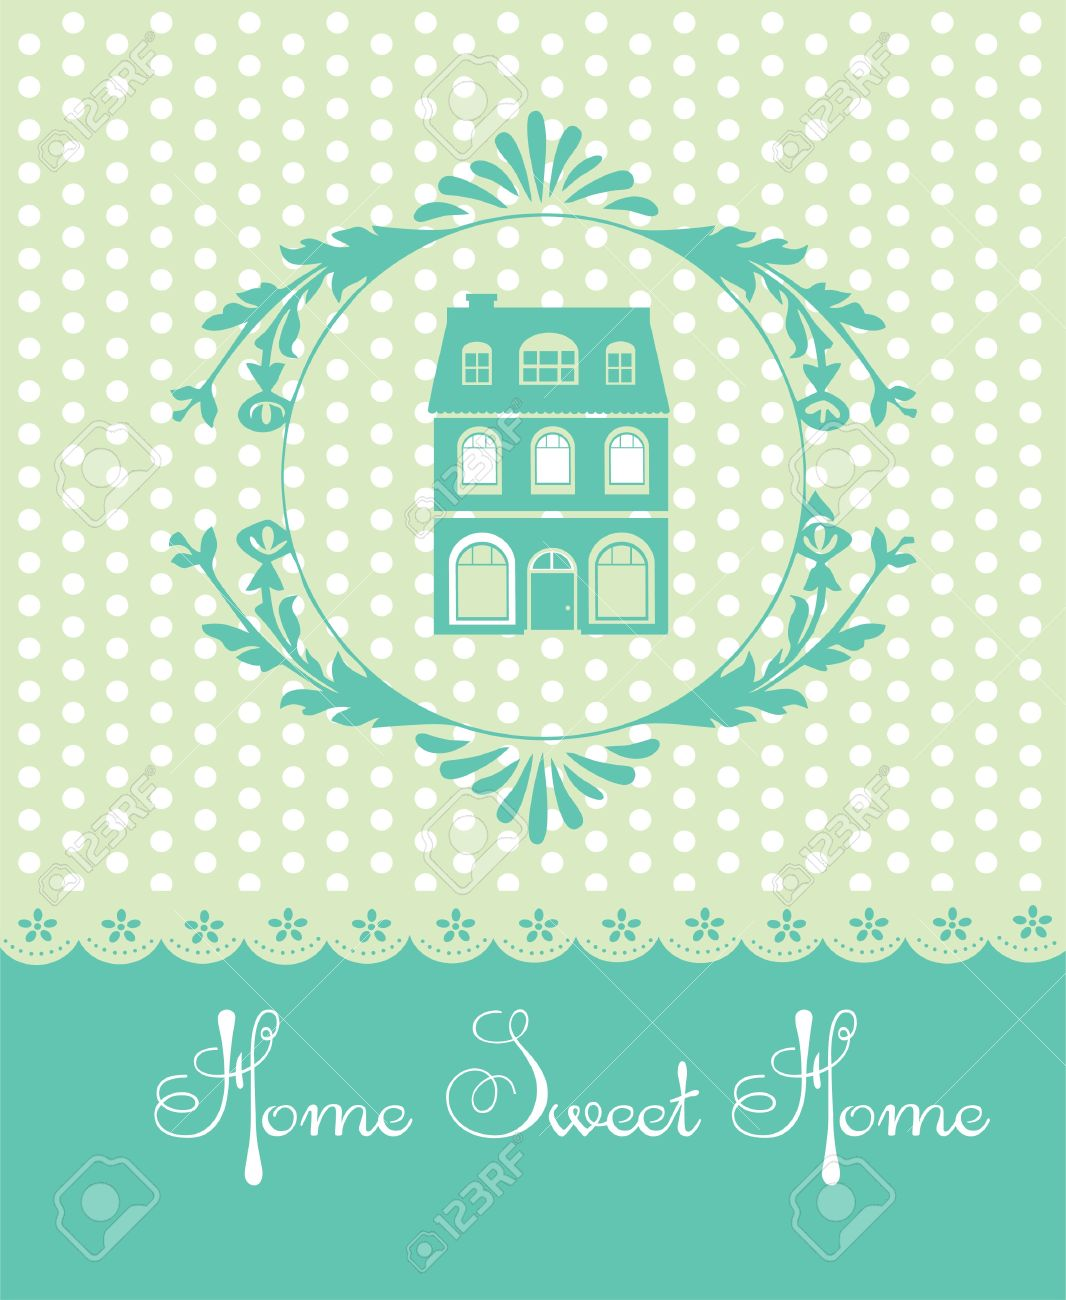 Home Sweet Home Vintage home sweet home card vector illustration royalty free cliparts